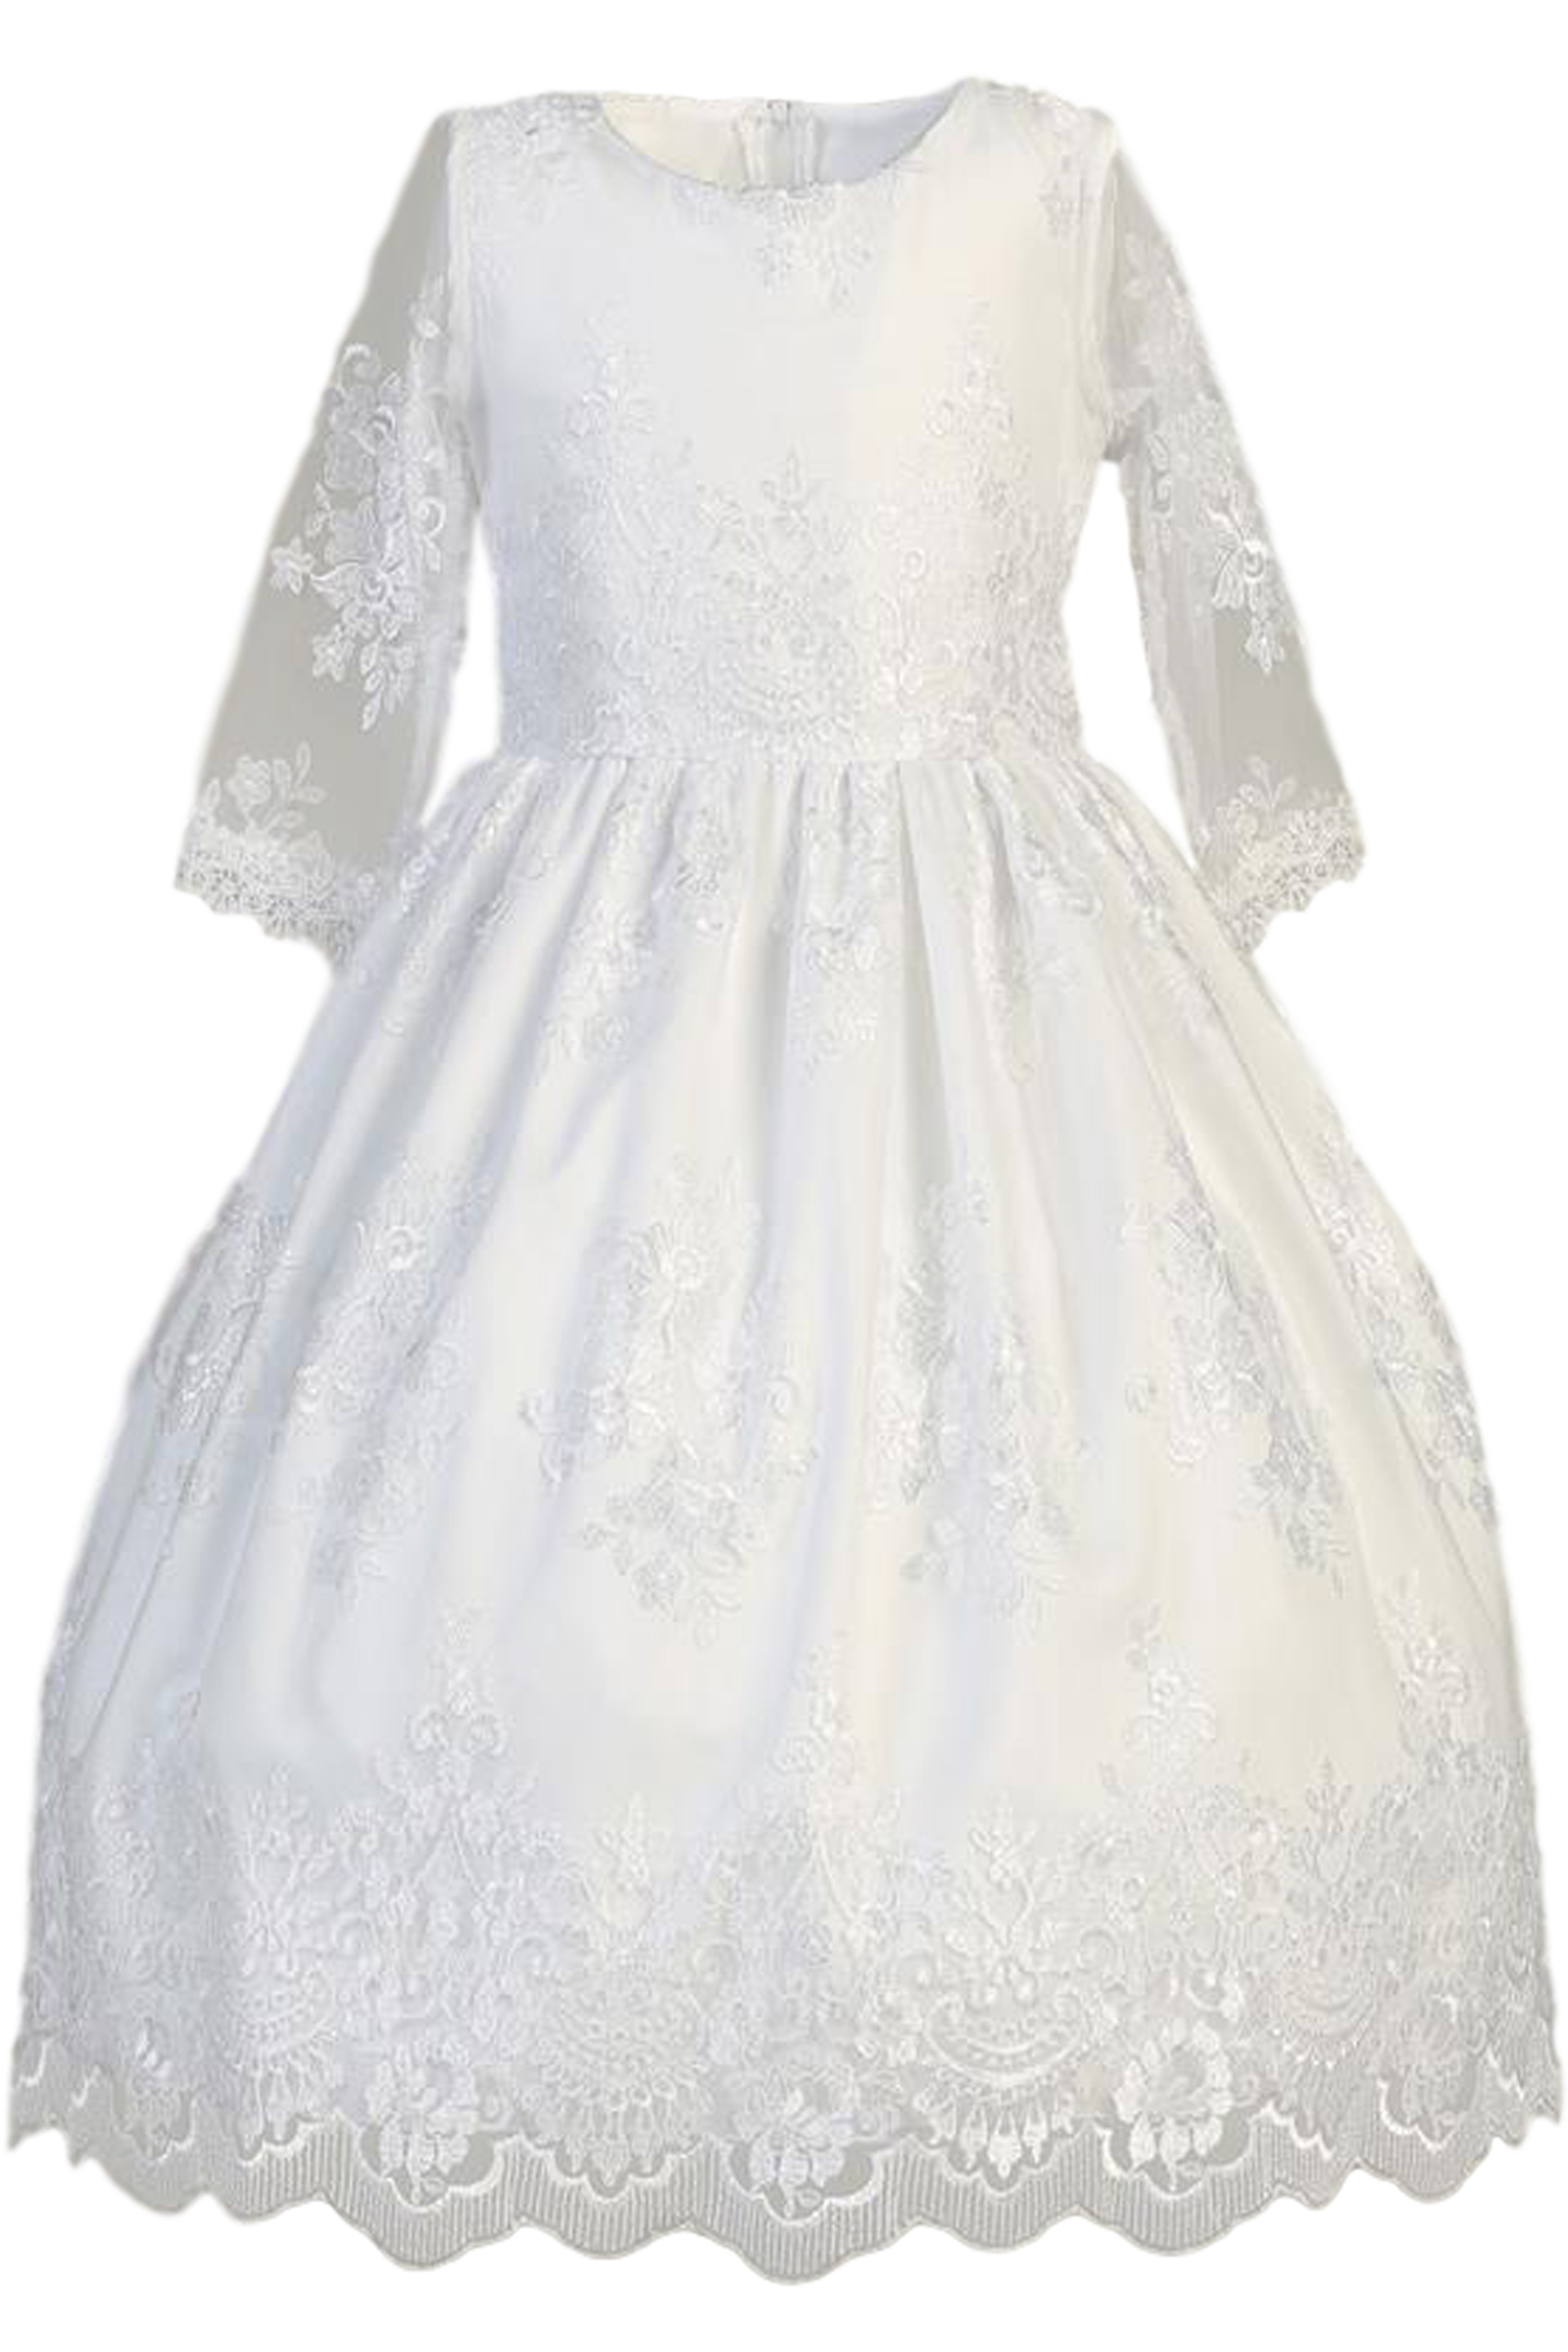 c746789e88b Floral Damask Lace Girls Communion Dress w. Sheer 3 4 Sleeves 6-12